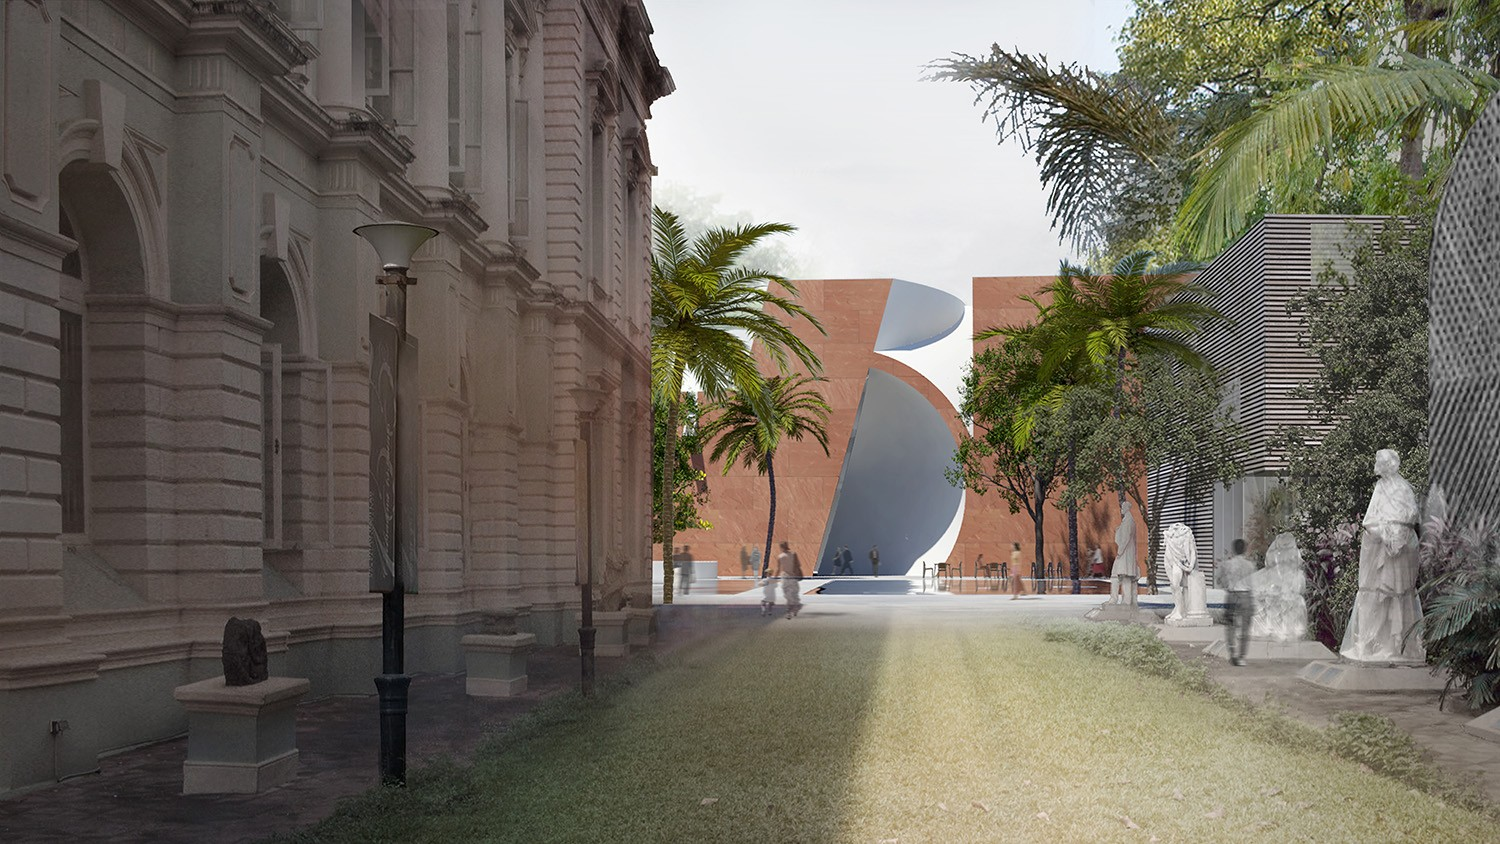 https://stevenholl.sfo2.digitaloceanspaces.com/uploads/projects/project-images/StevenHollArchitects_Mumbai_SHA_03_Path view_WH.jpg